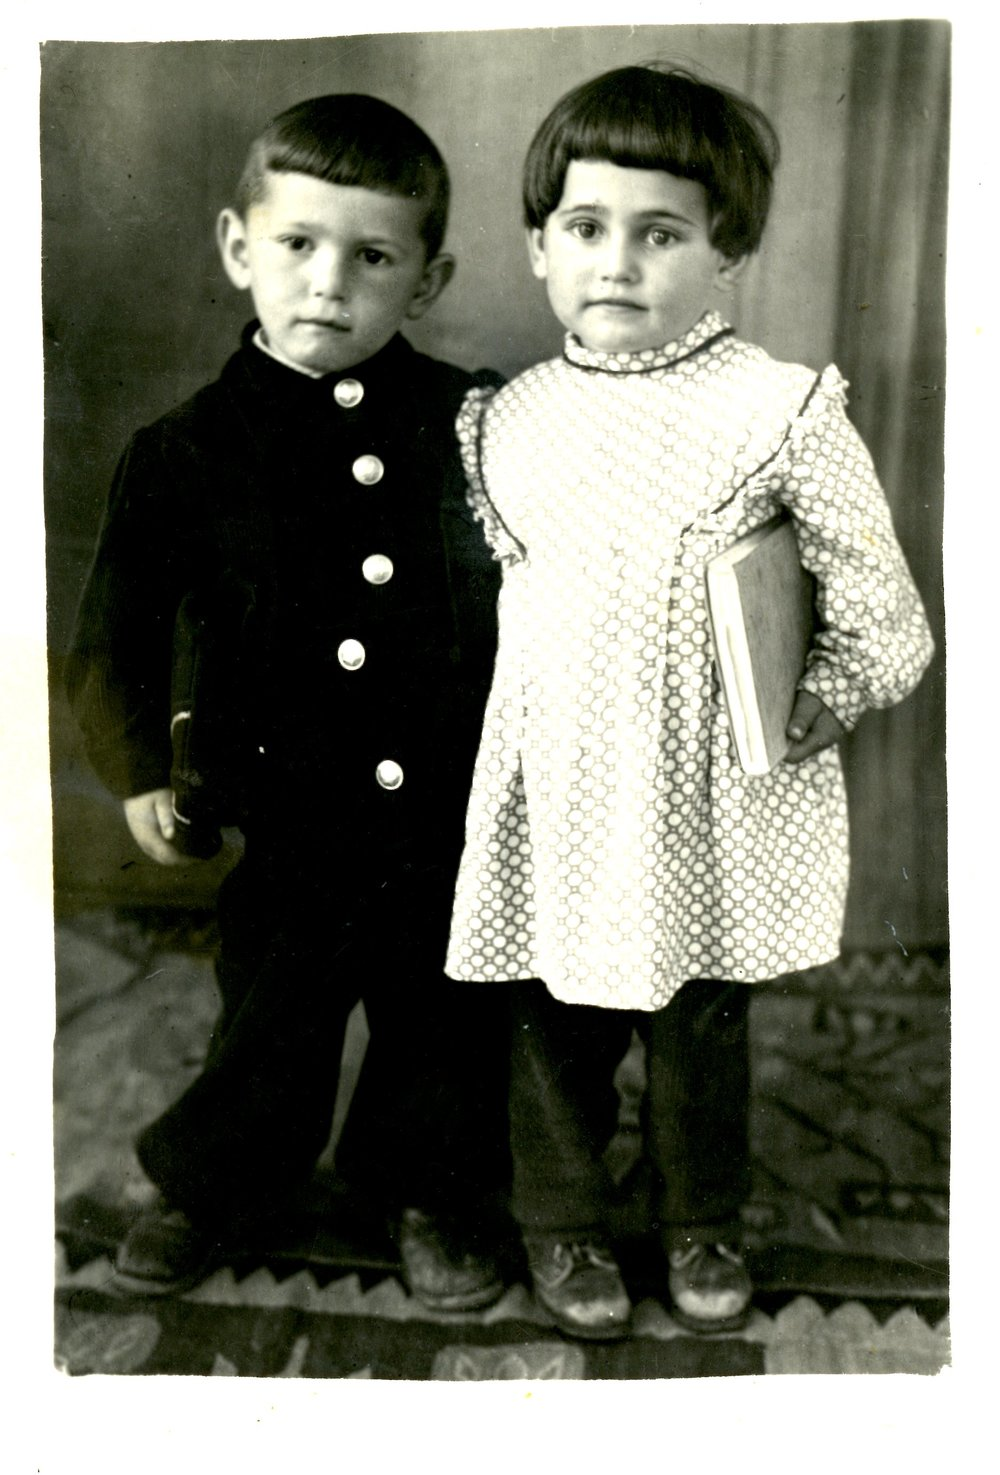 Khana's half-brother, Chaim, and cousin, Faga, named after Khan's grandparents who were killed in Soroka by the Germans